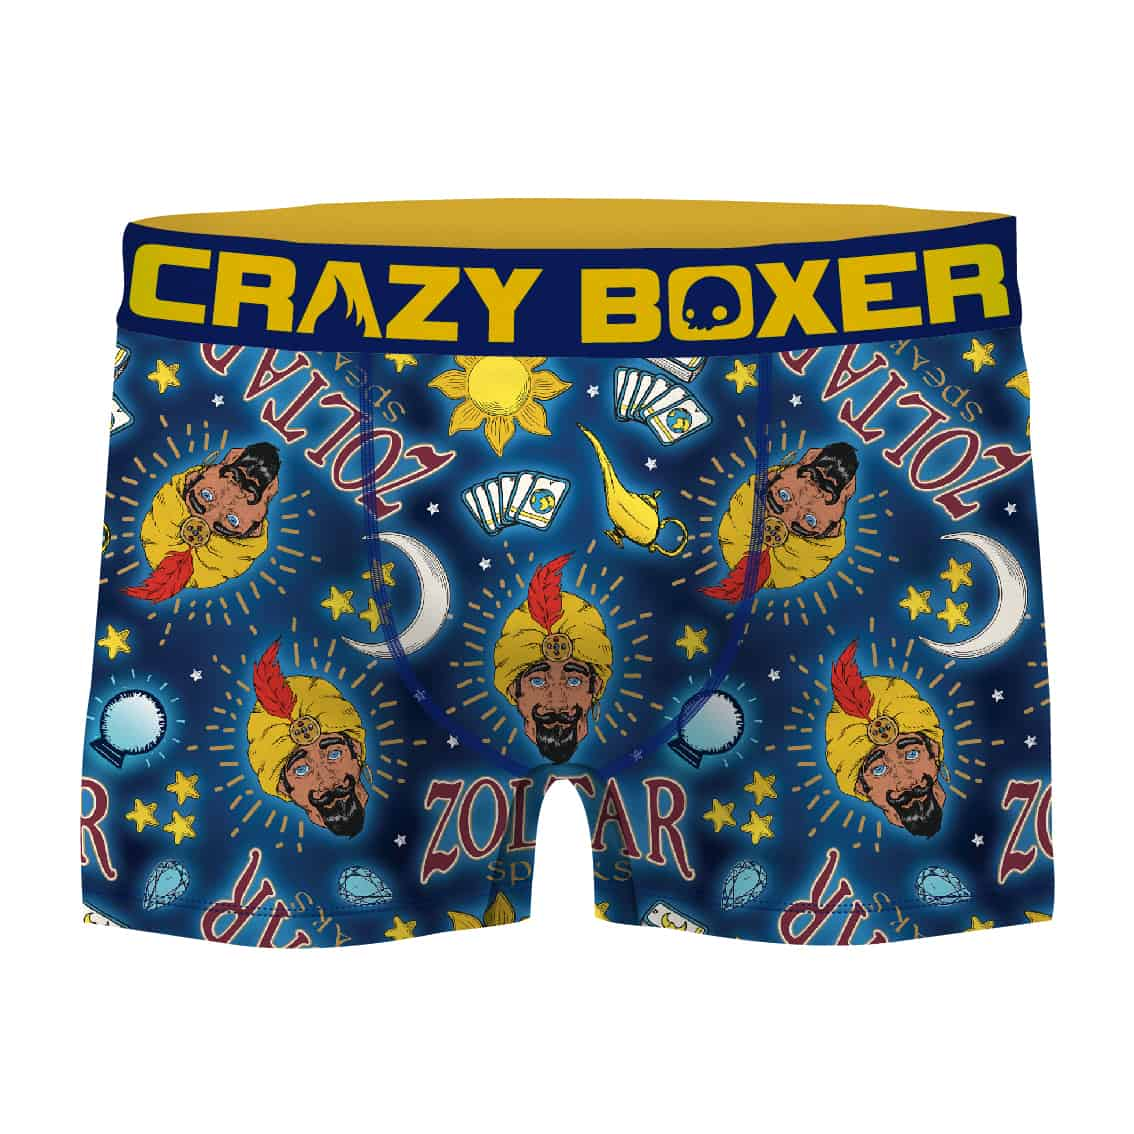 Crazy Boxer Introduces Zoltar to Licensed Product Selection